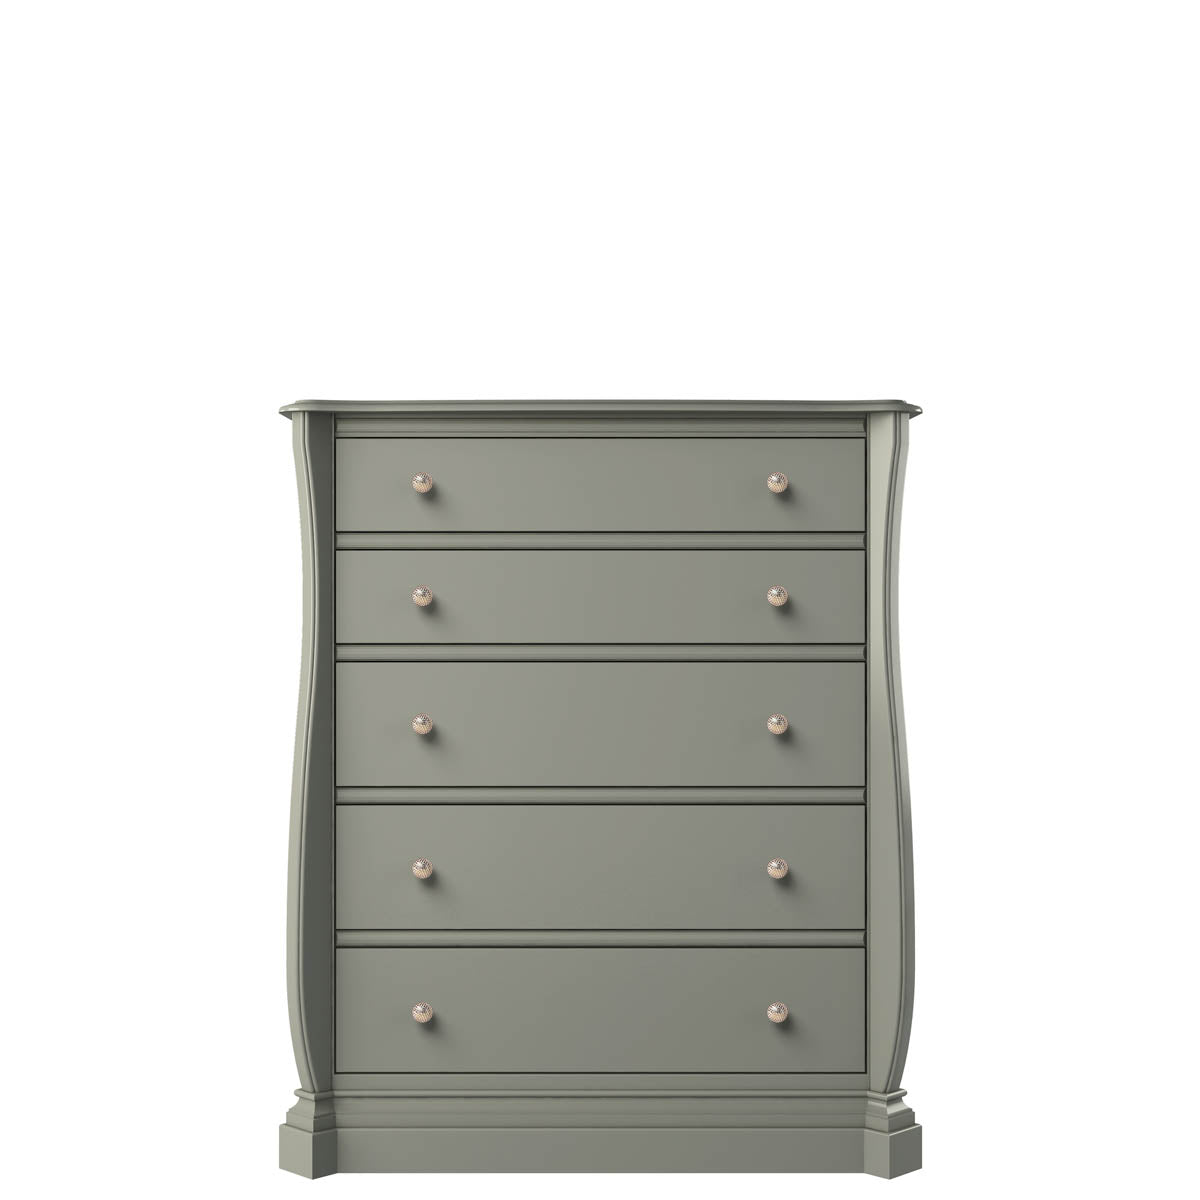 Romina Violini Five Drawers Chest